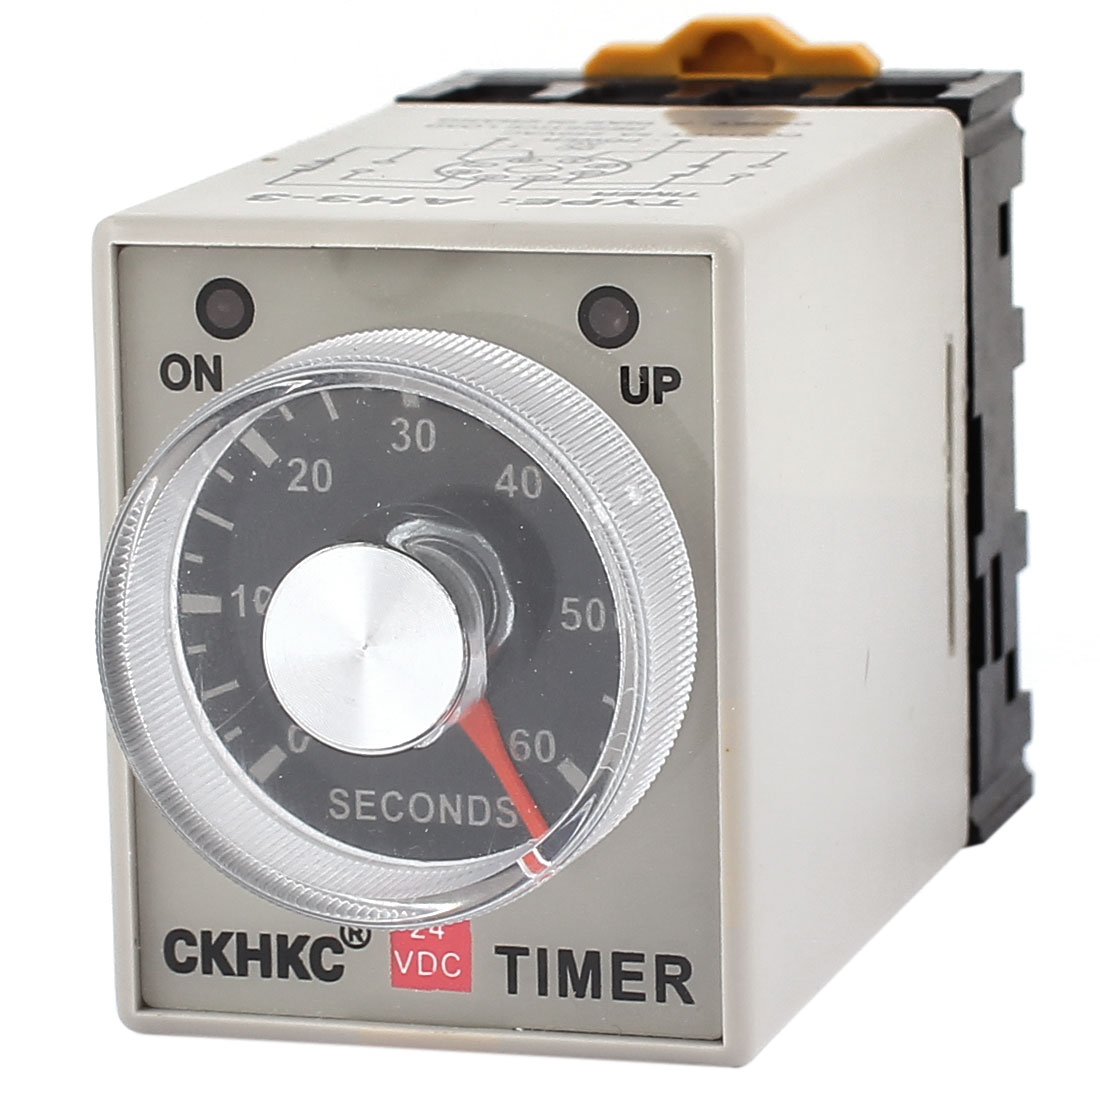 Adjustable Delay Time Dpdt 8 Pin 0-60 Seconds Timer Relay 24V 2A